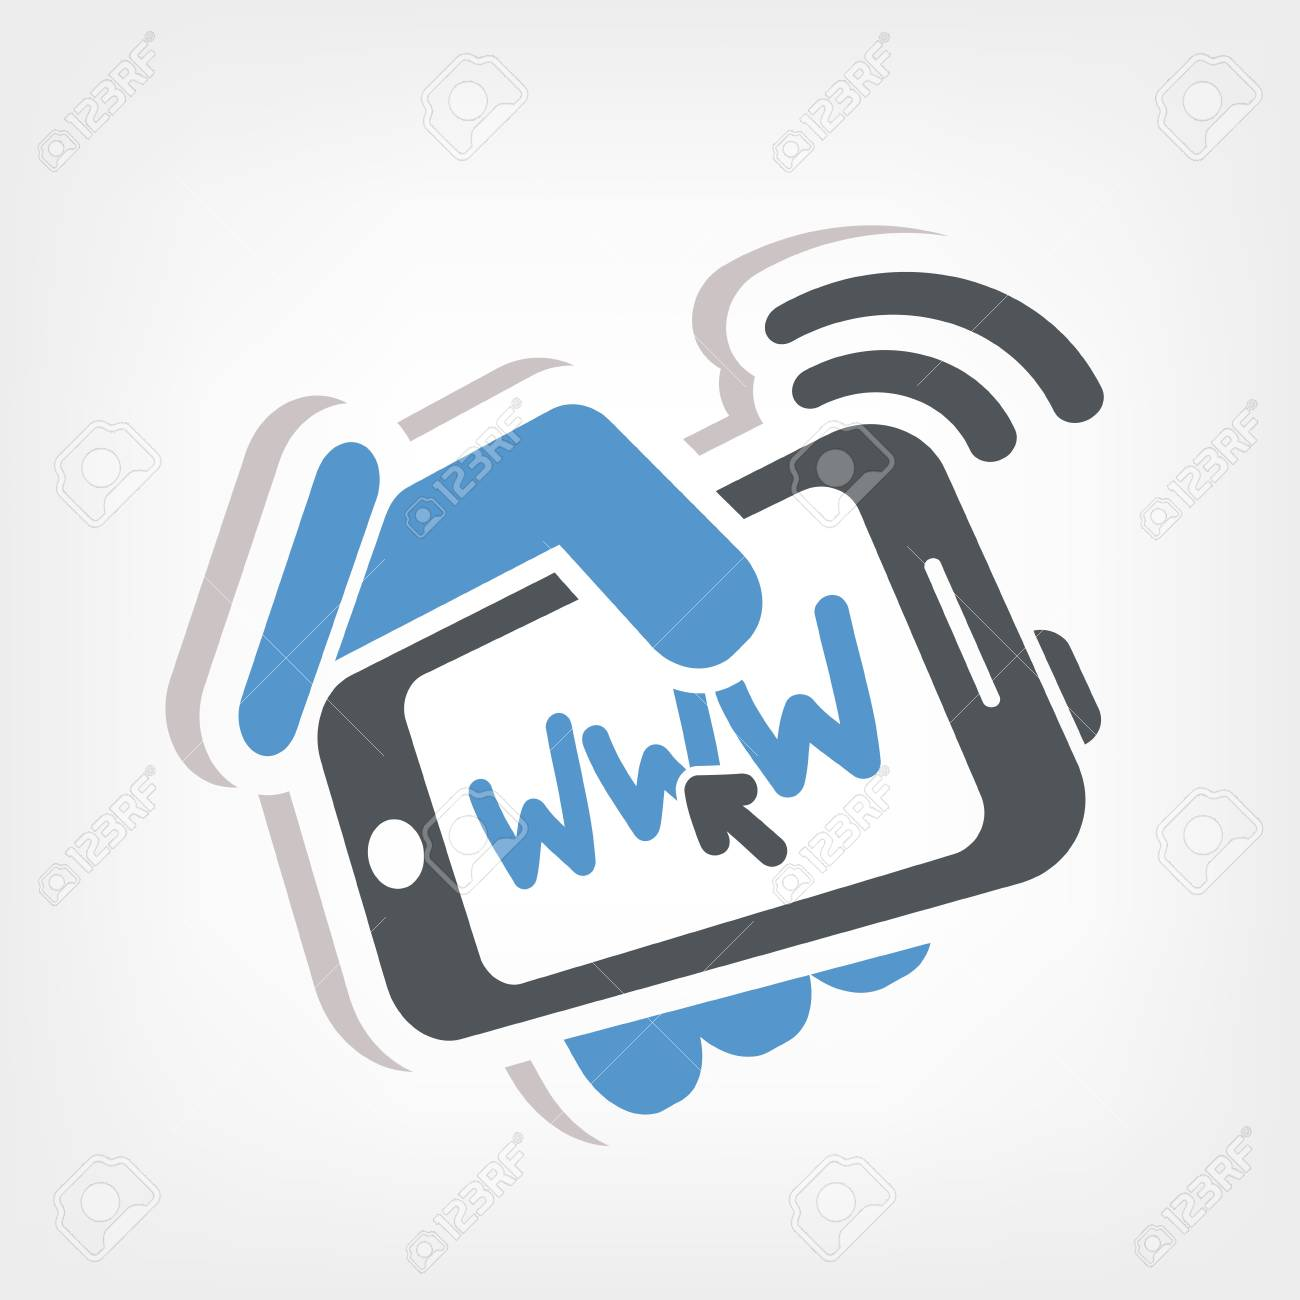 Smartphone connection web Stock Vector - 20236396